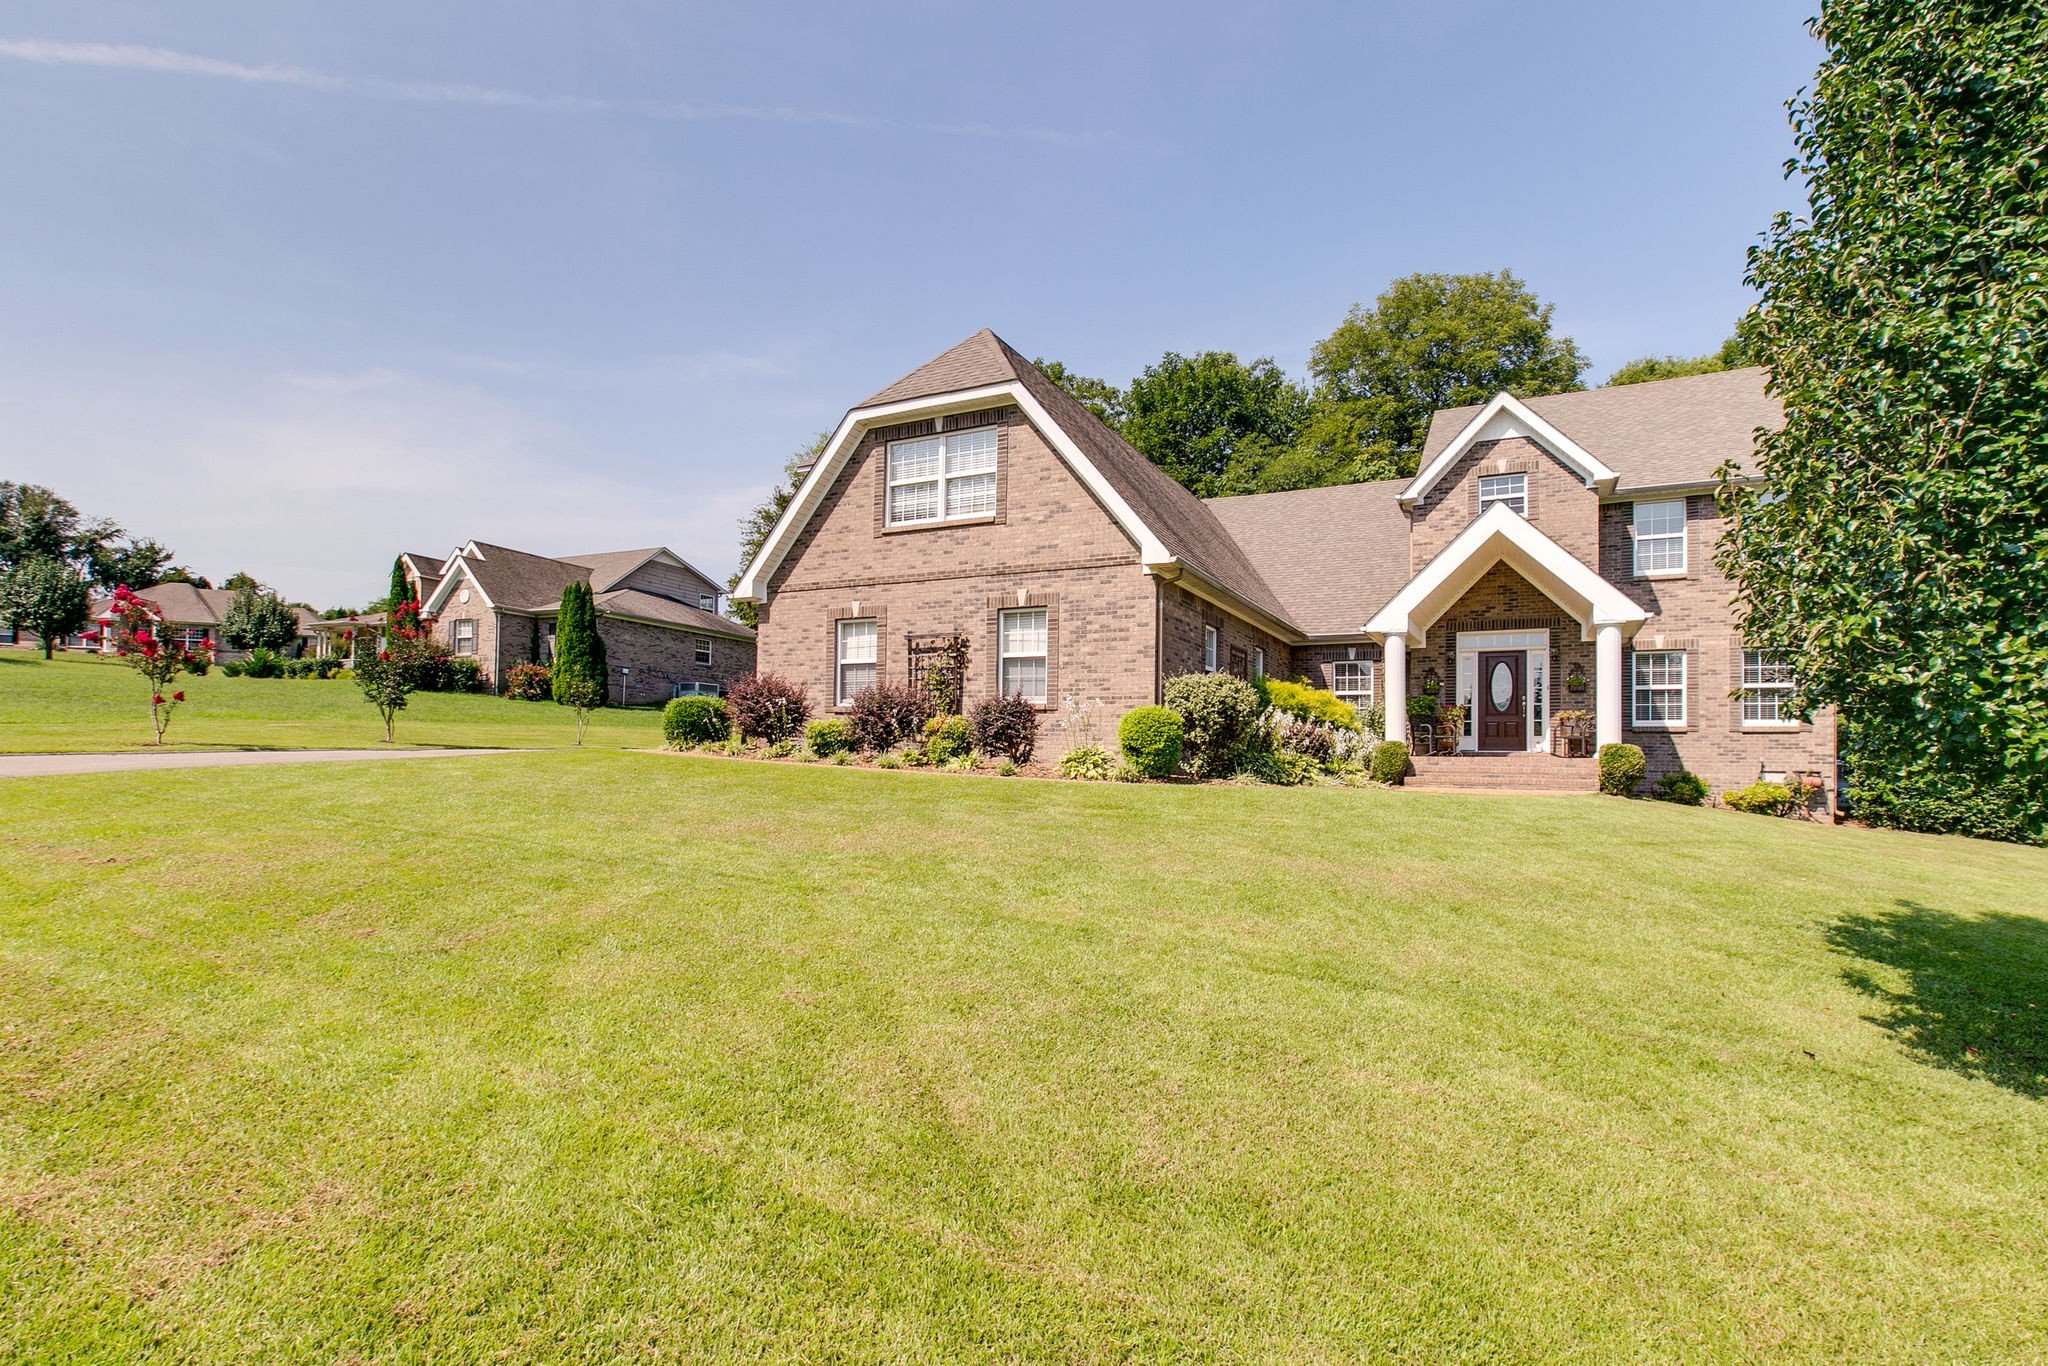 1804 Holden Ct, Spring Hill, TN 37174 - Spring Hill, TN real estate listing